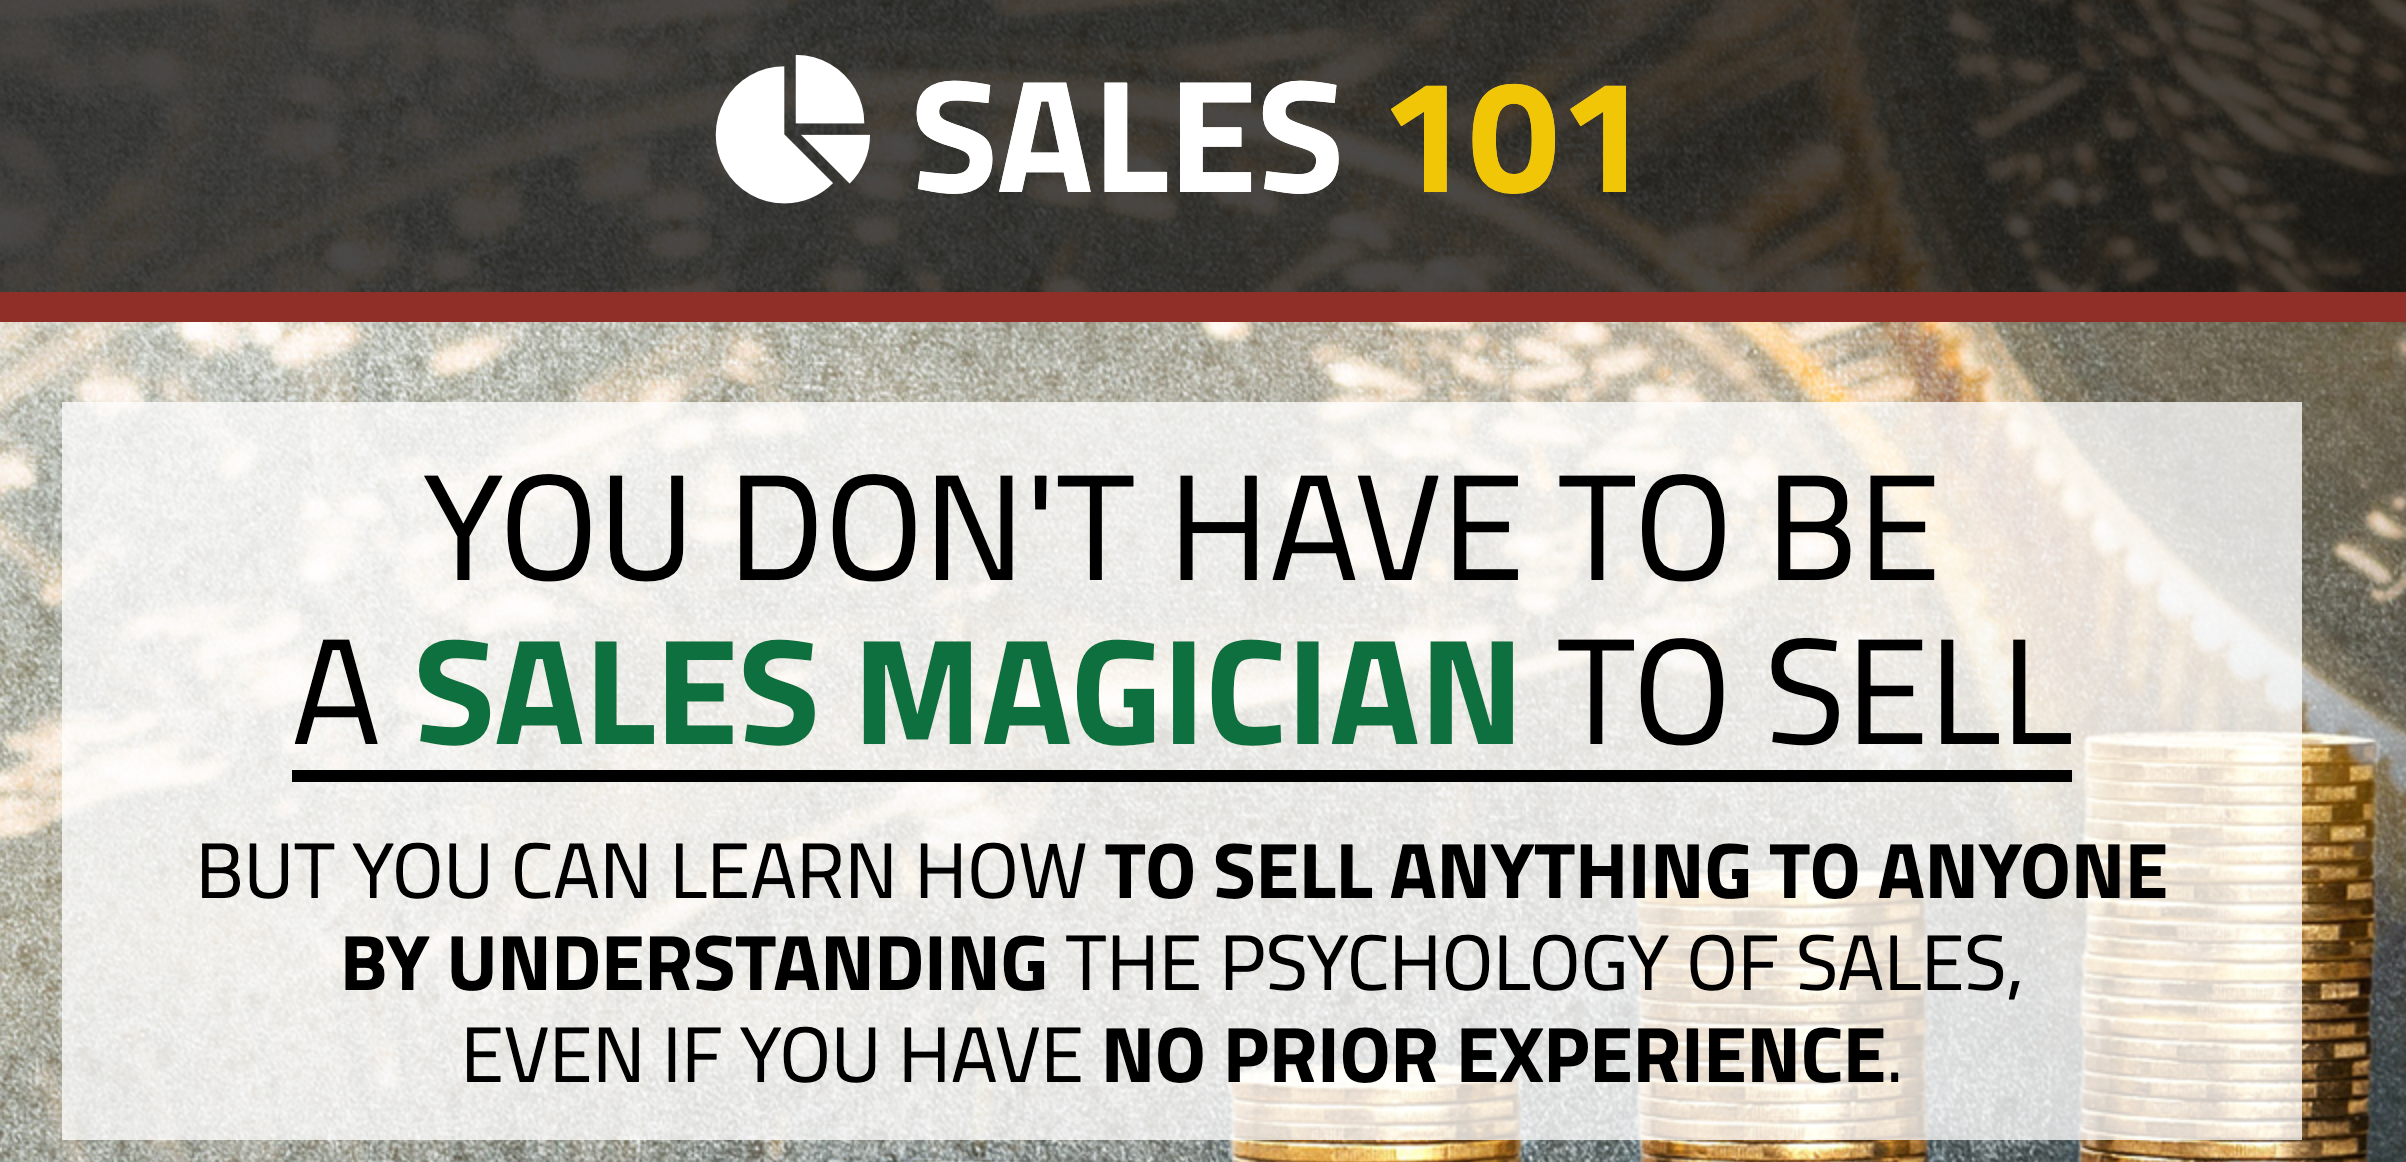 Sales 101 Course – Secret Entourage v